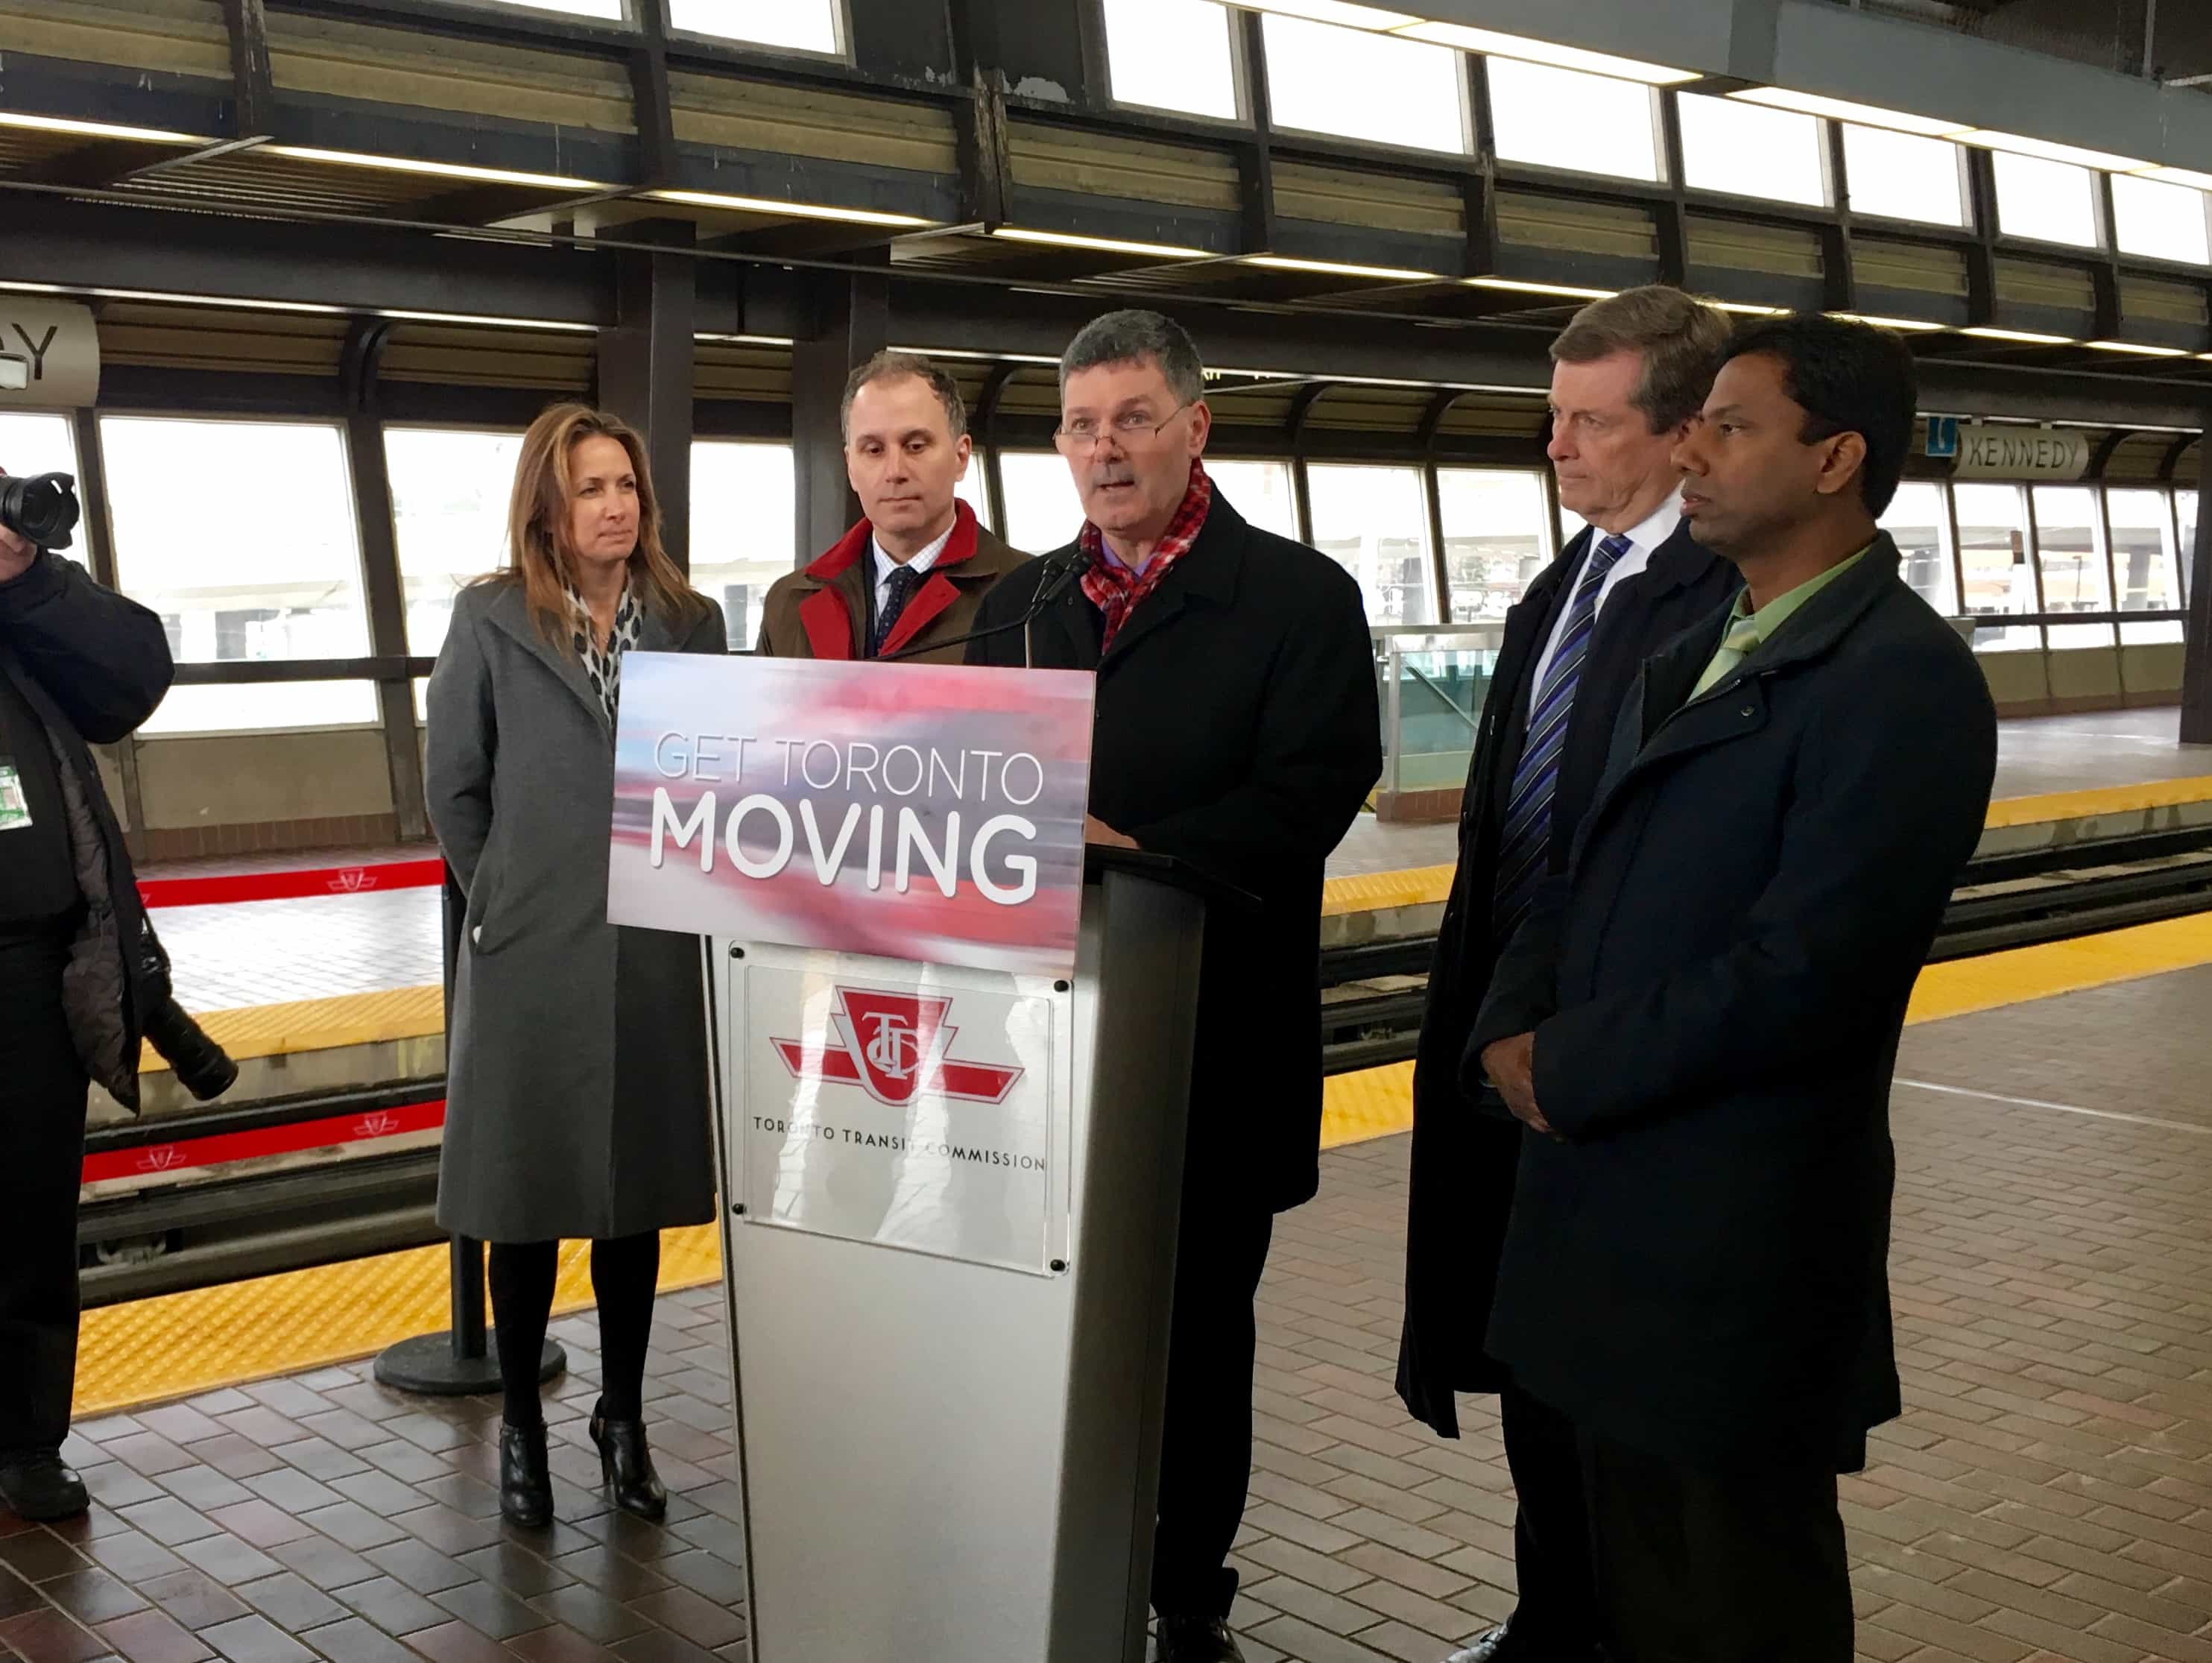 """10:14 a.m. Feb. 28, 2017. """"Scarborough councillors, every MPP, every MP… 19 out of 20 elected people representing the city of Scarborough support the Scarborough subway… I'm thrilled to be reading over this report today, to make sure that as we move forward we make very good decisions on behalf of the people of Scarborough and all of Toronto,"""" Councillor Glenn De Baeremaeker said, going on to compare Scarborough to North York. """"You can see an area with virtually the same population, the same geographic area, but the dramatic difference in the level of service. I'm pleased to see with this report that as we move forward, Scarborough's going to get the investment that it needs to make it an equal member of the family in the City of Toronto."""""""